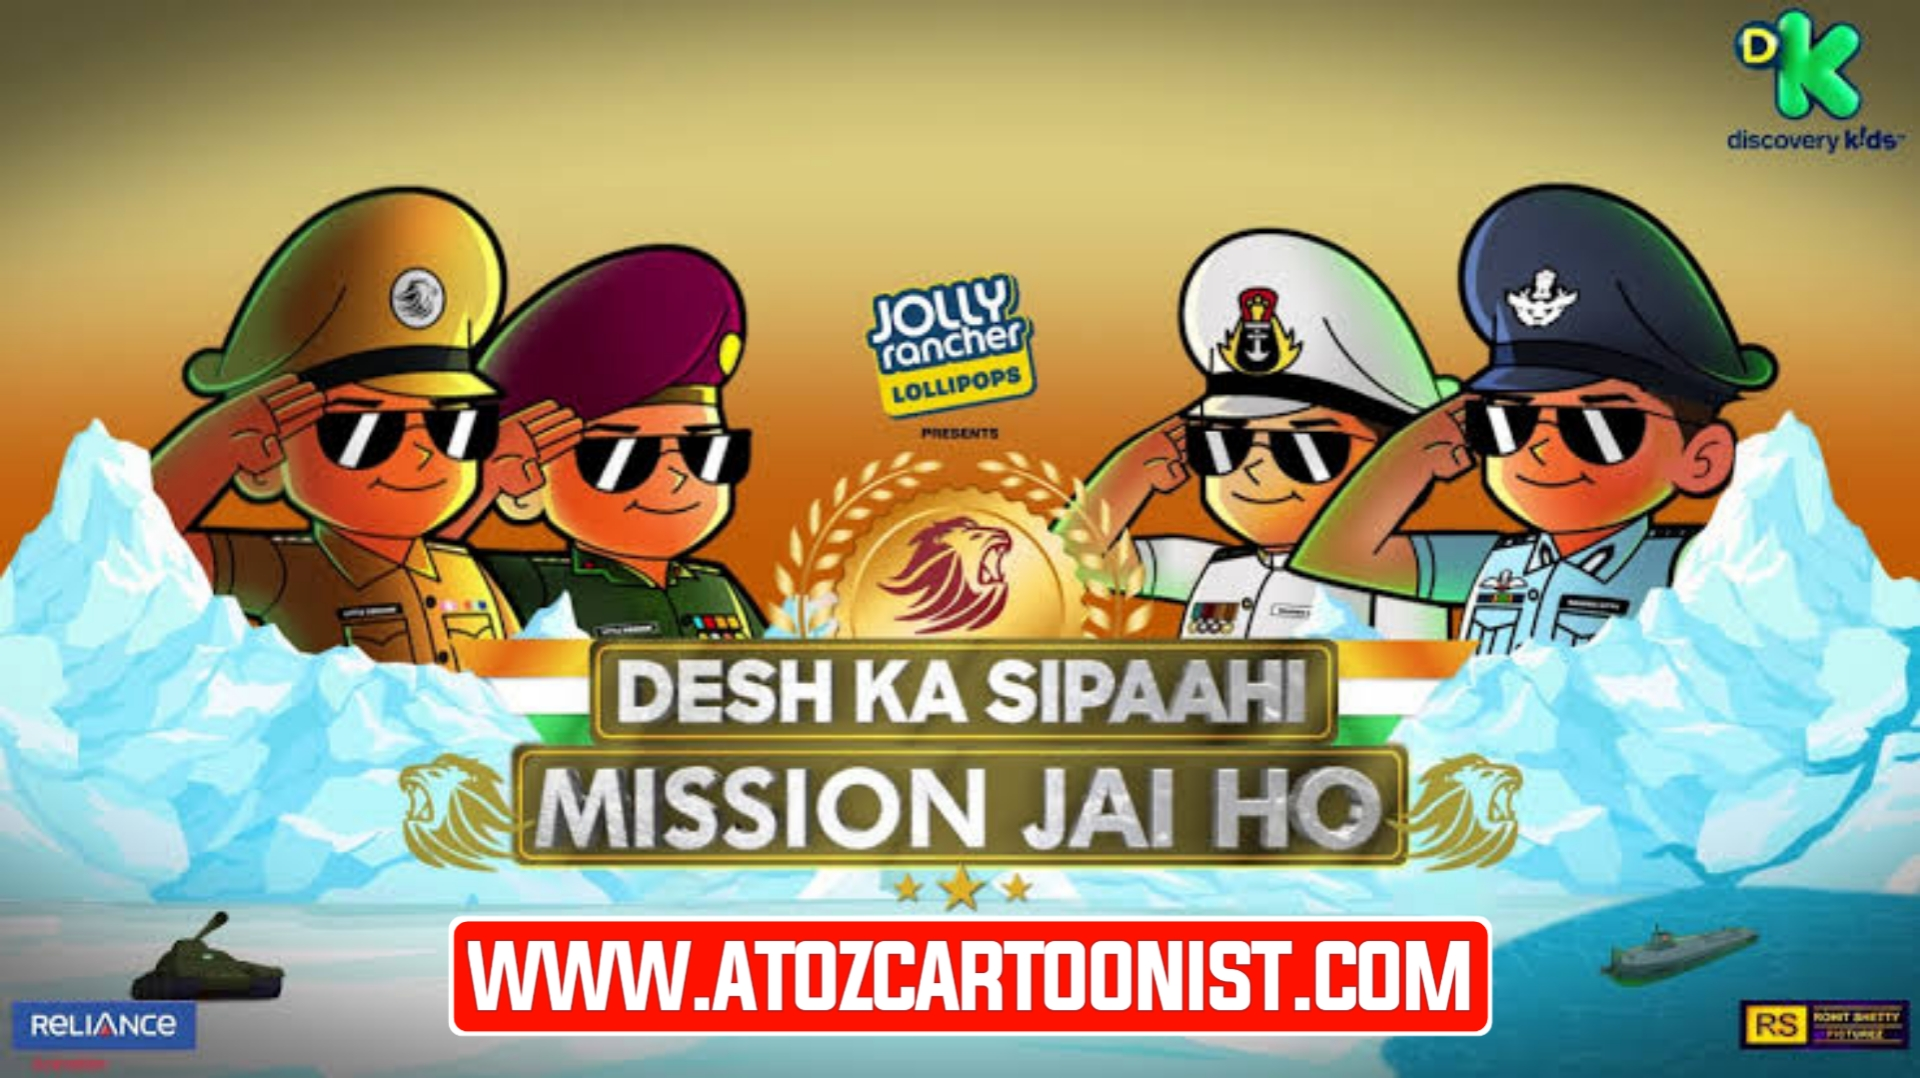 LITTLE SINGHAM DESH KA SIPAAHI – MISSION JAI HO FULL MOVIE IN HINDI DOWNLOAD (480P HALF HD)